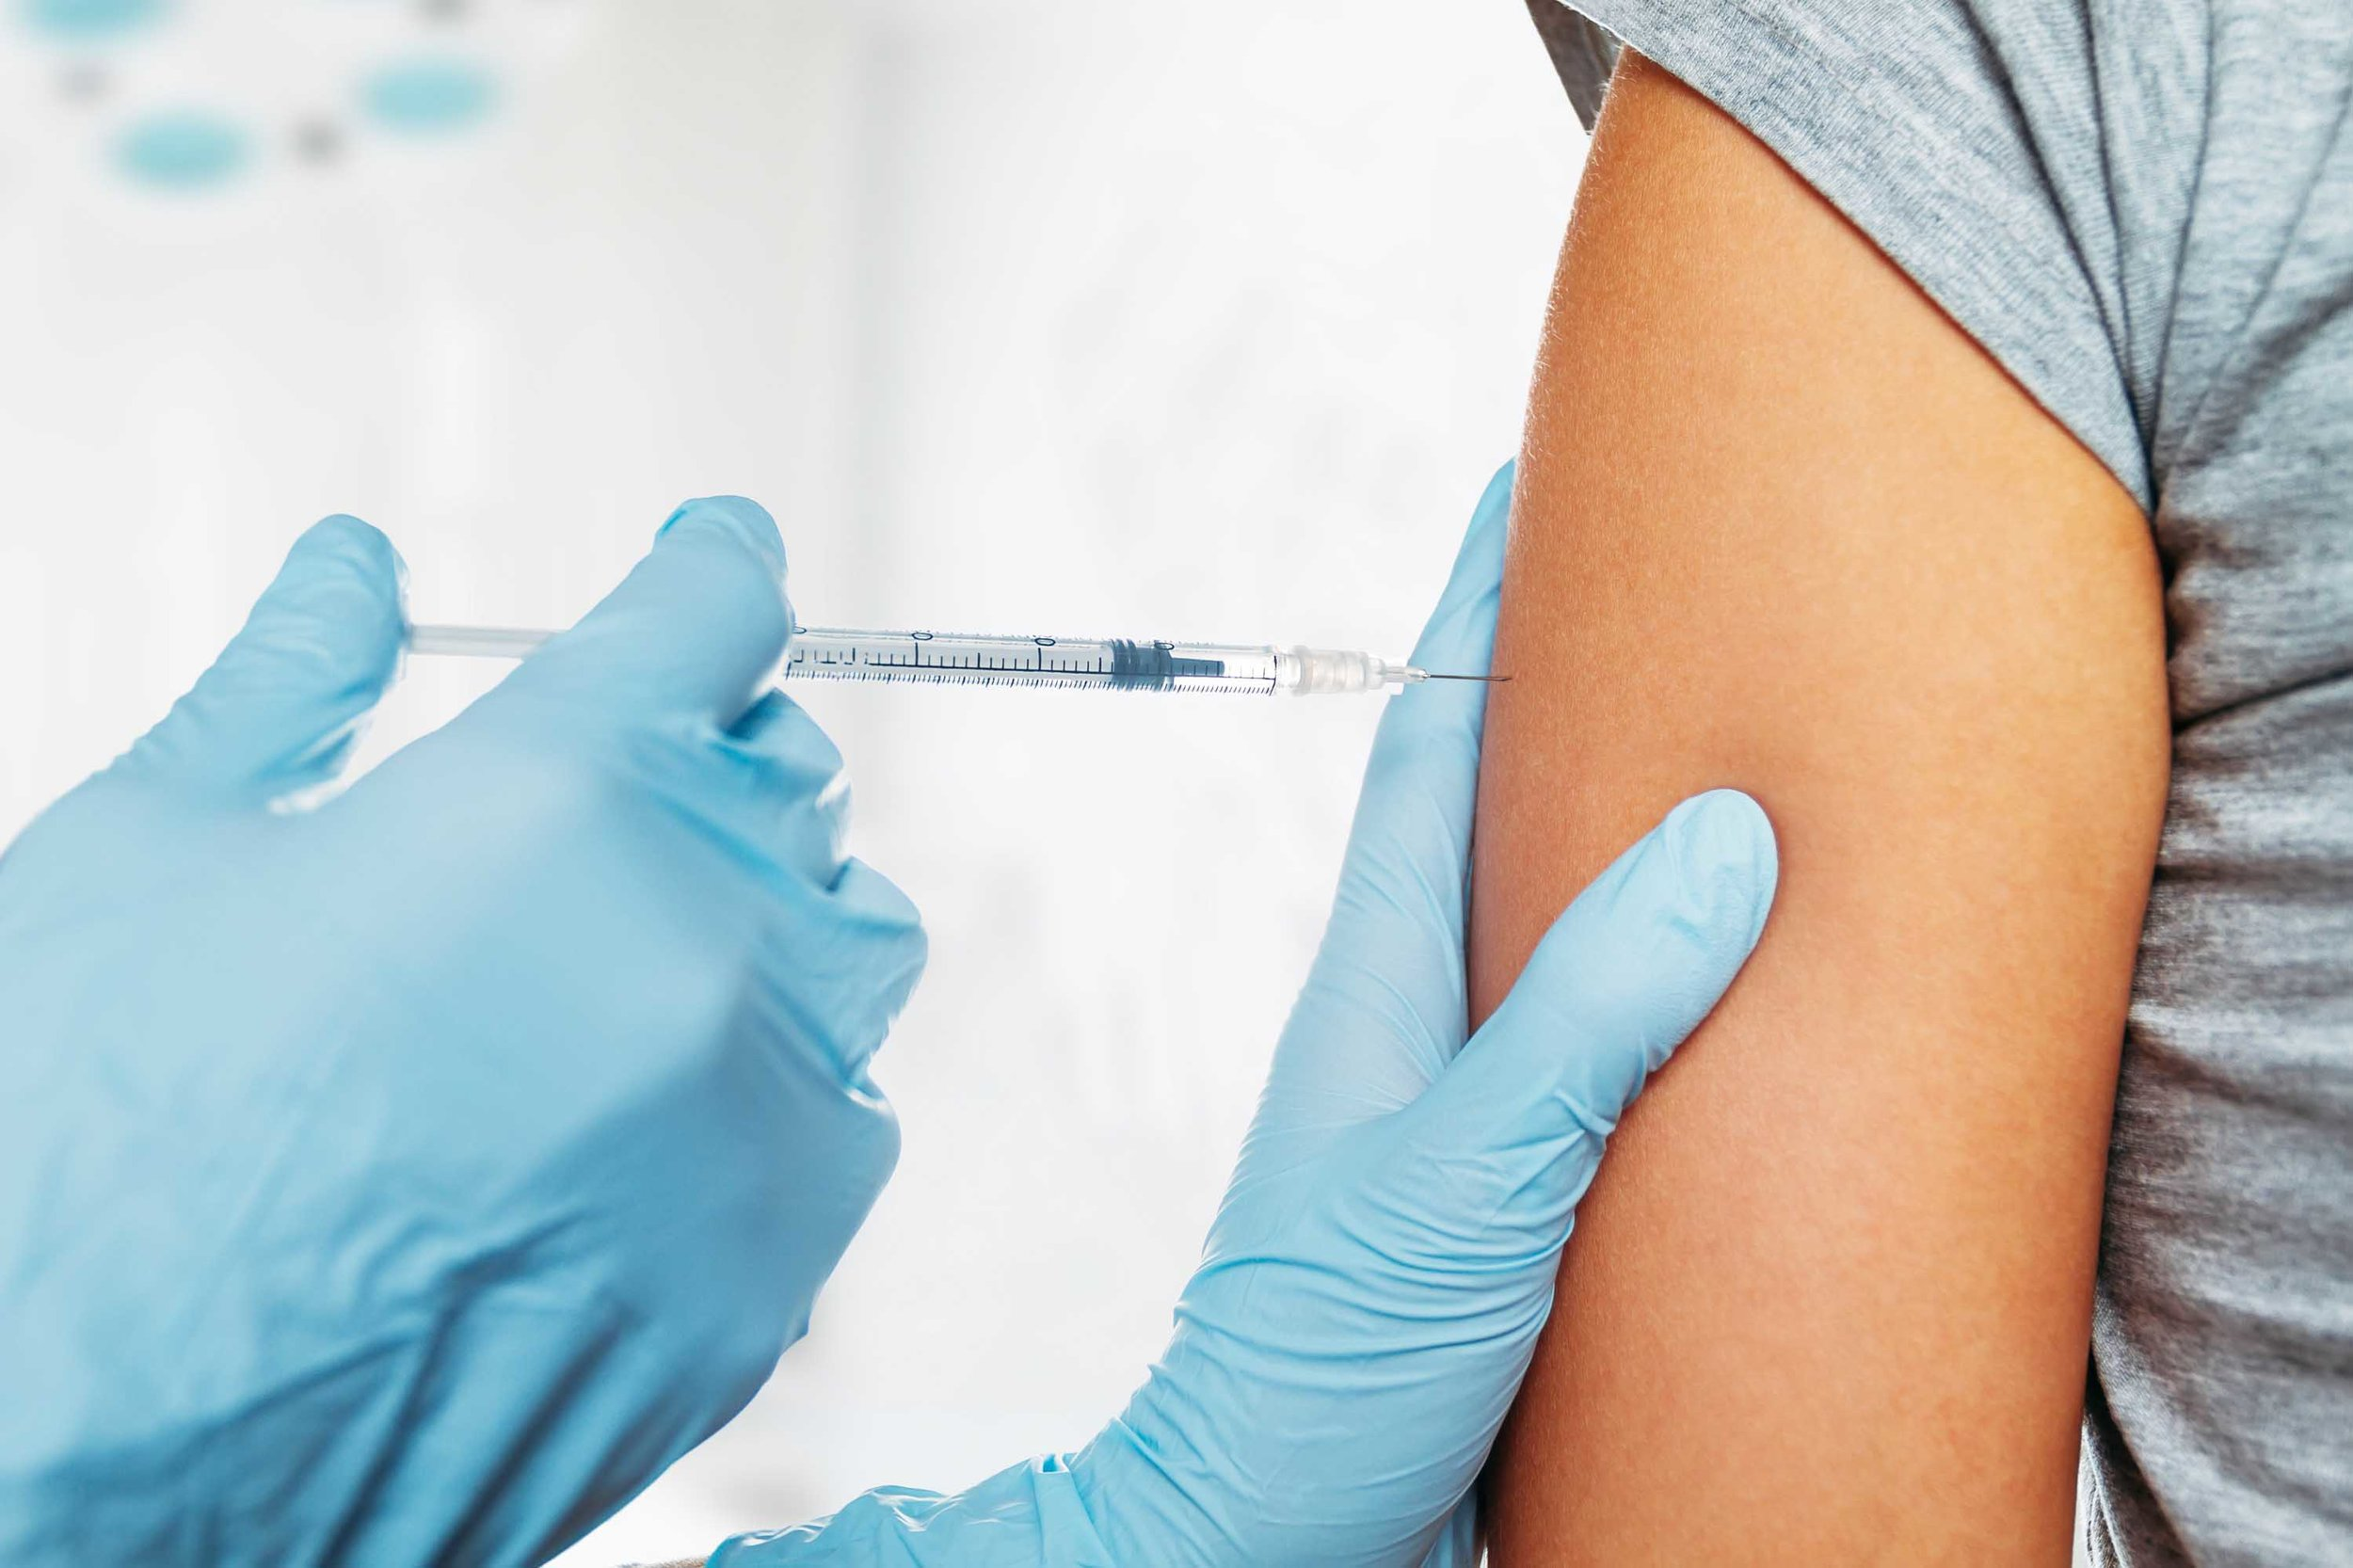 hepatitis-A-vaccine.jpg